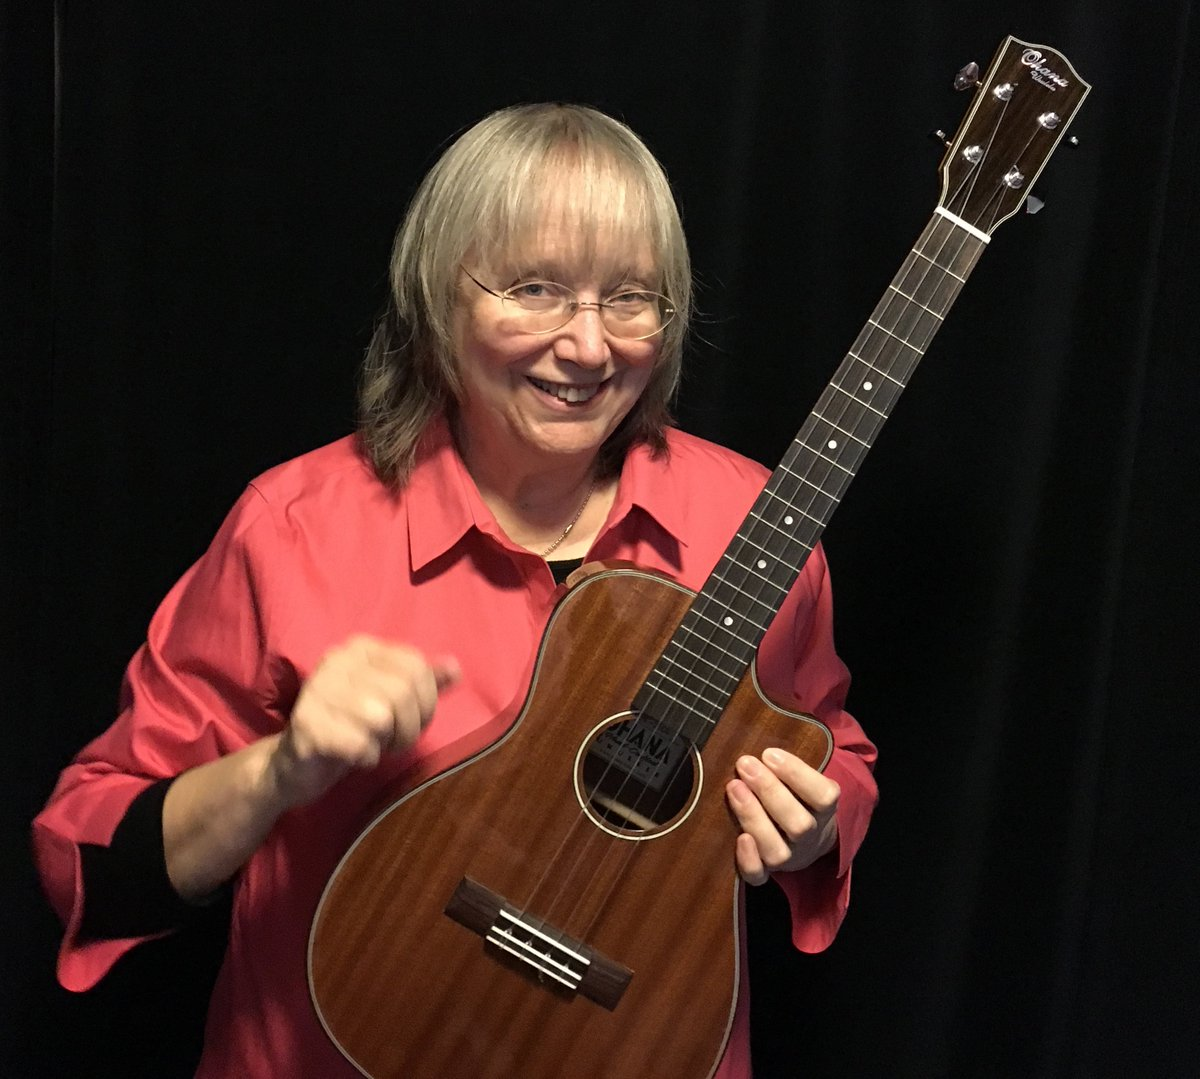 Looking for a Baritone Ukulele? Check out the Marcy Marxer model @OhanaUkuleles  https:// youtu.be/9Oq73ev3XiA     #ukulele #ukuleleteacher #baritoneukulele #uke #Strum #music #fourstring @MarcyMarxer  @TrueFireTV @HomespunTapes<br>http://pic.twitter.com/uzLP6S8Lph